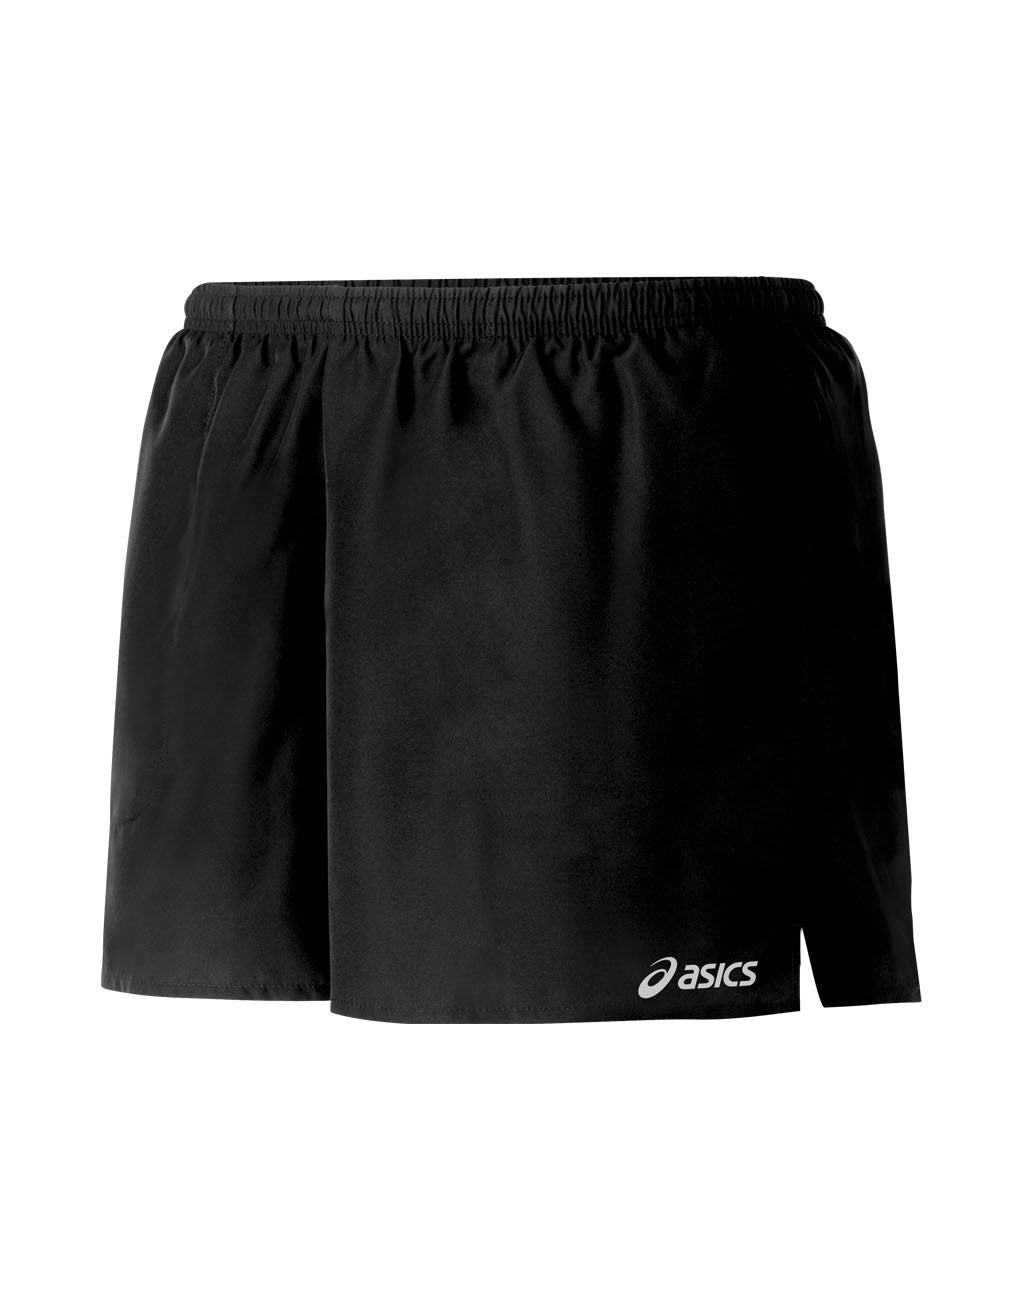 ASICS Pocketed Short 3.5in (Women's)S_master_image